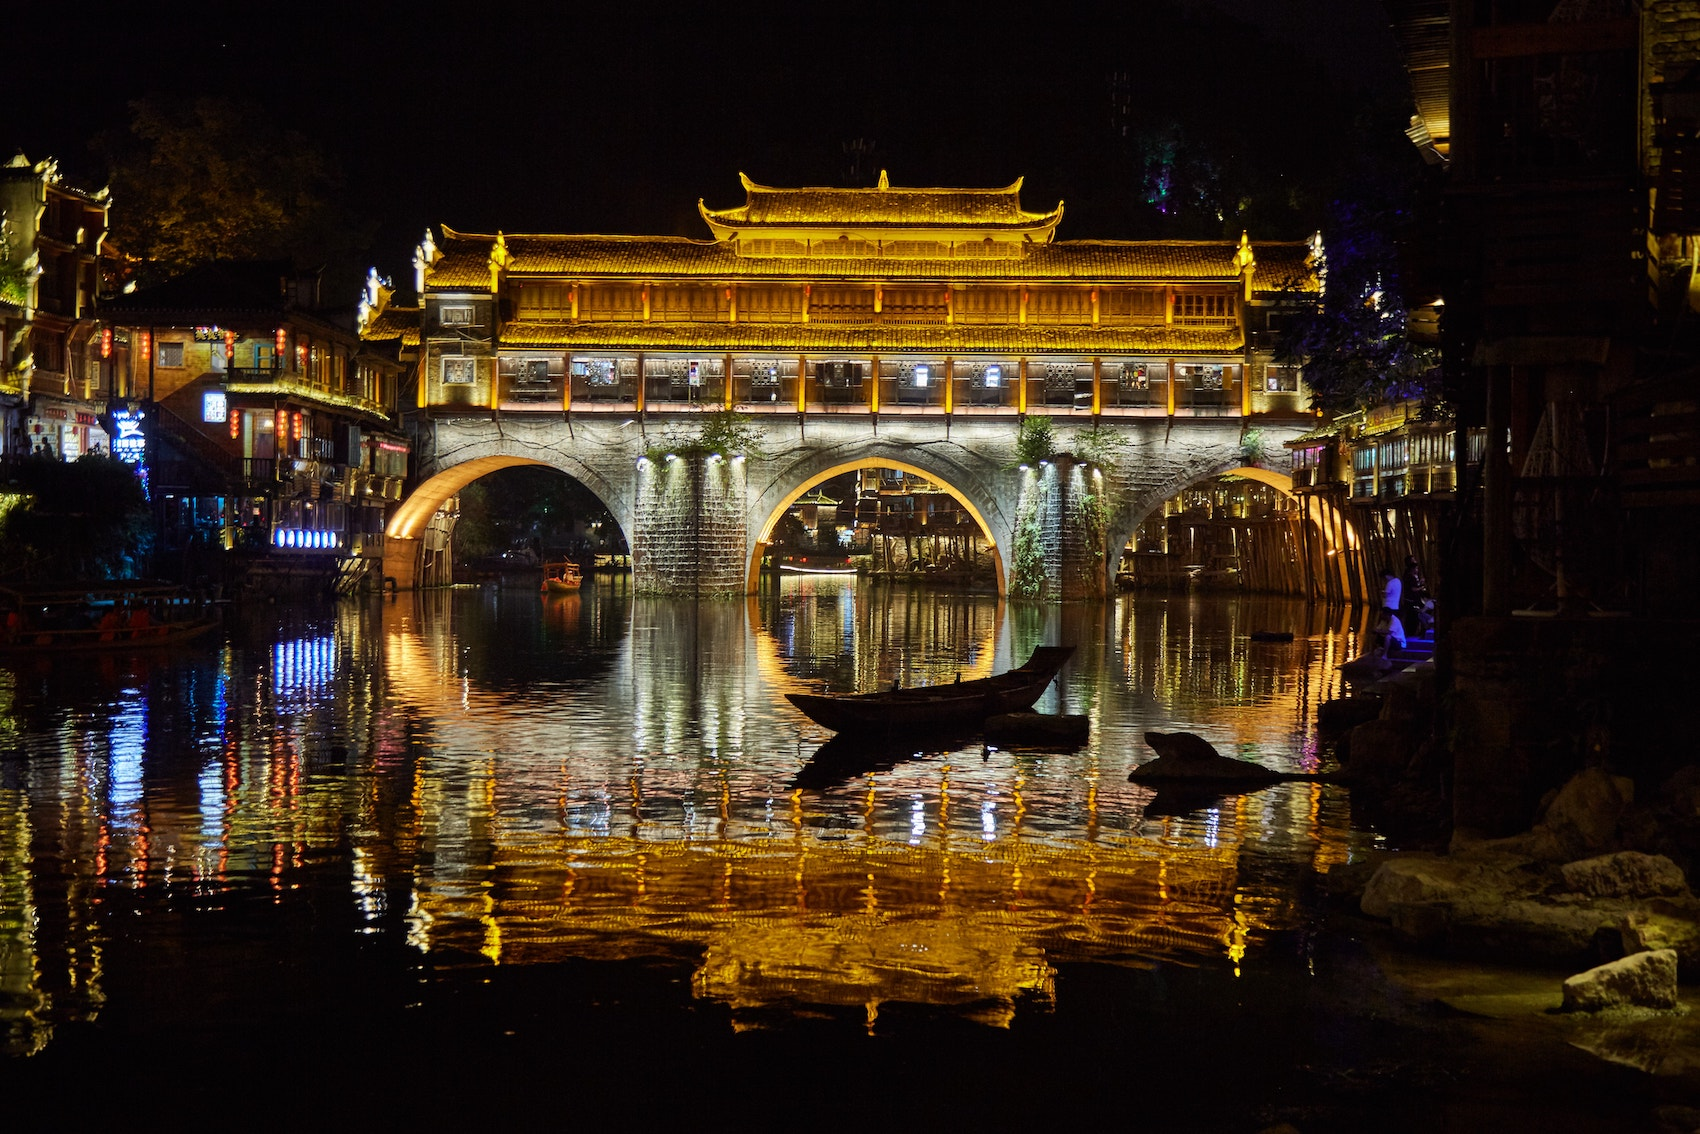 Fenghuang Ancient Town Night